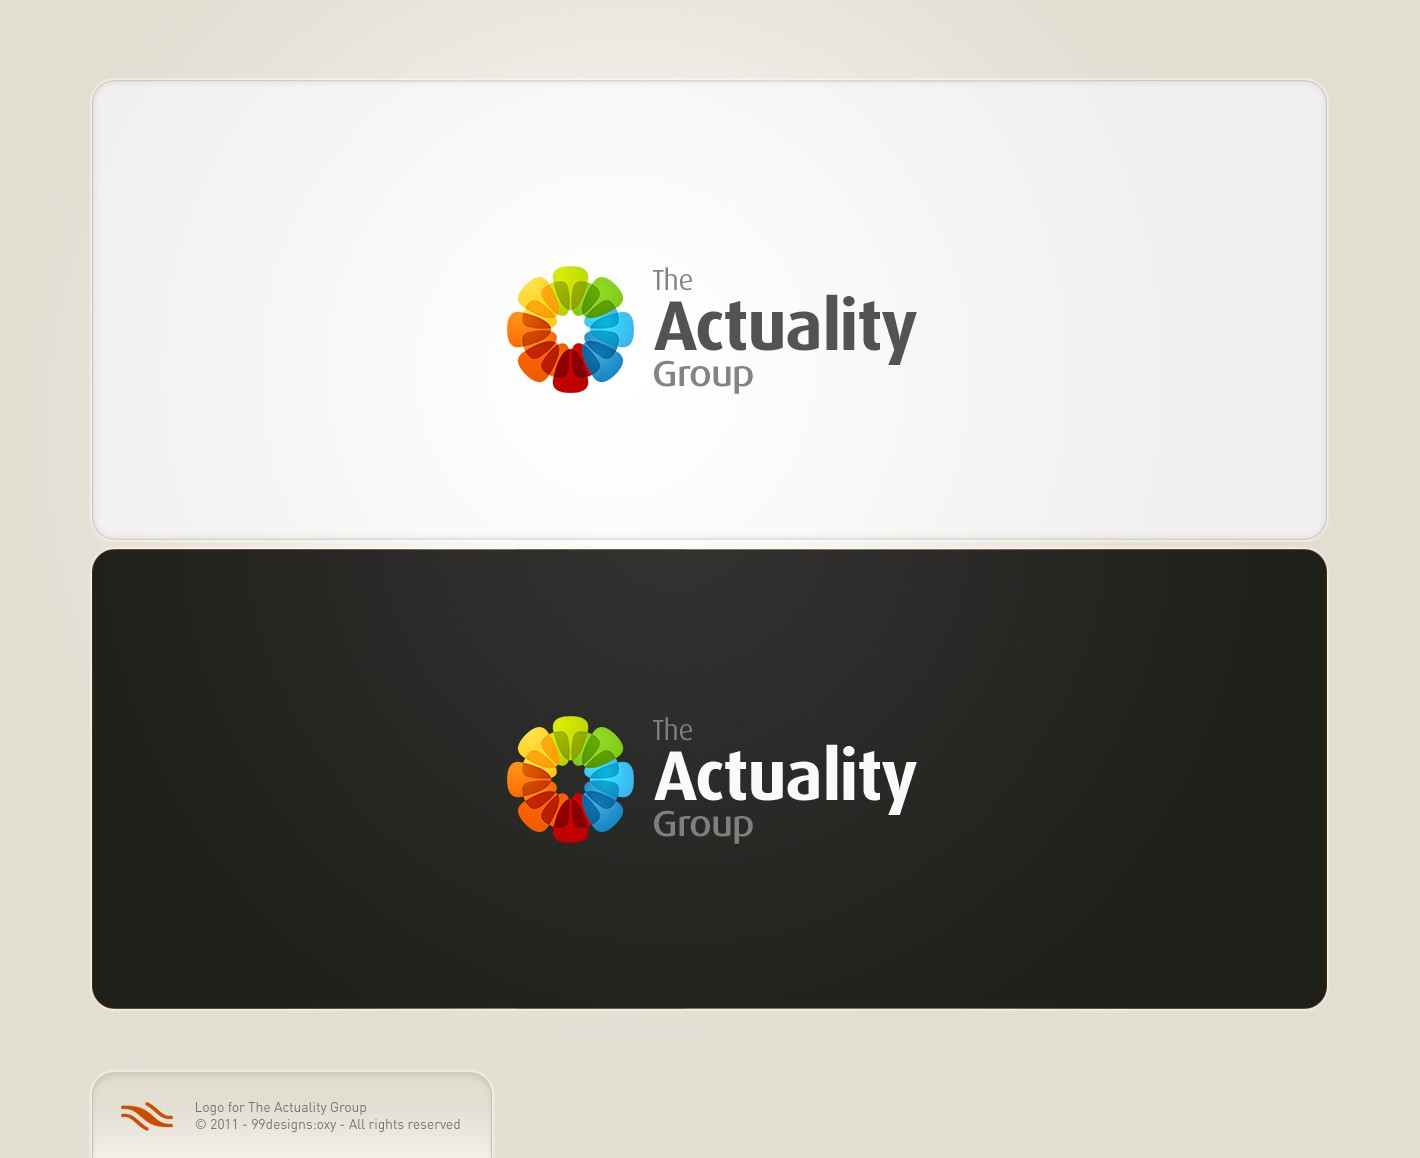 Visual identity for 'The Actuality Group' (a social enterprise)